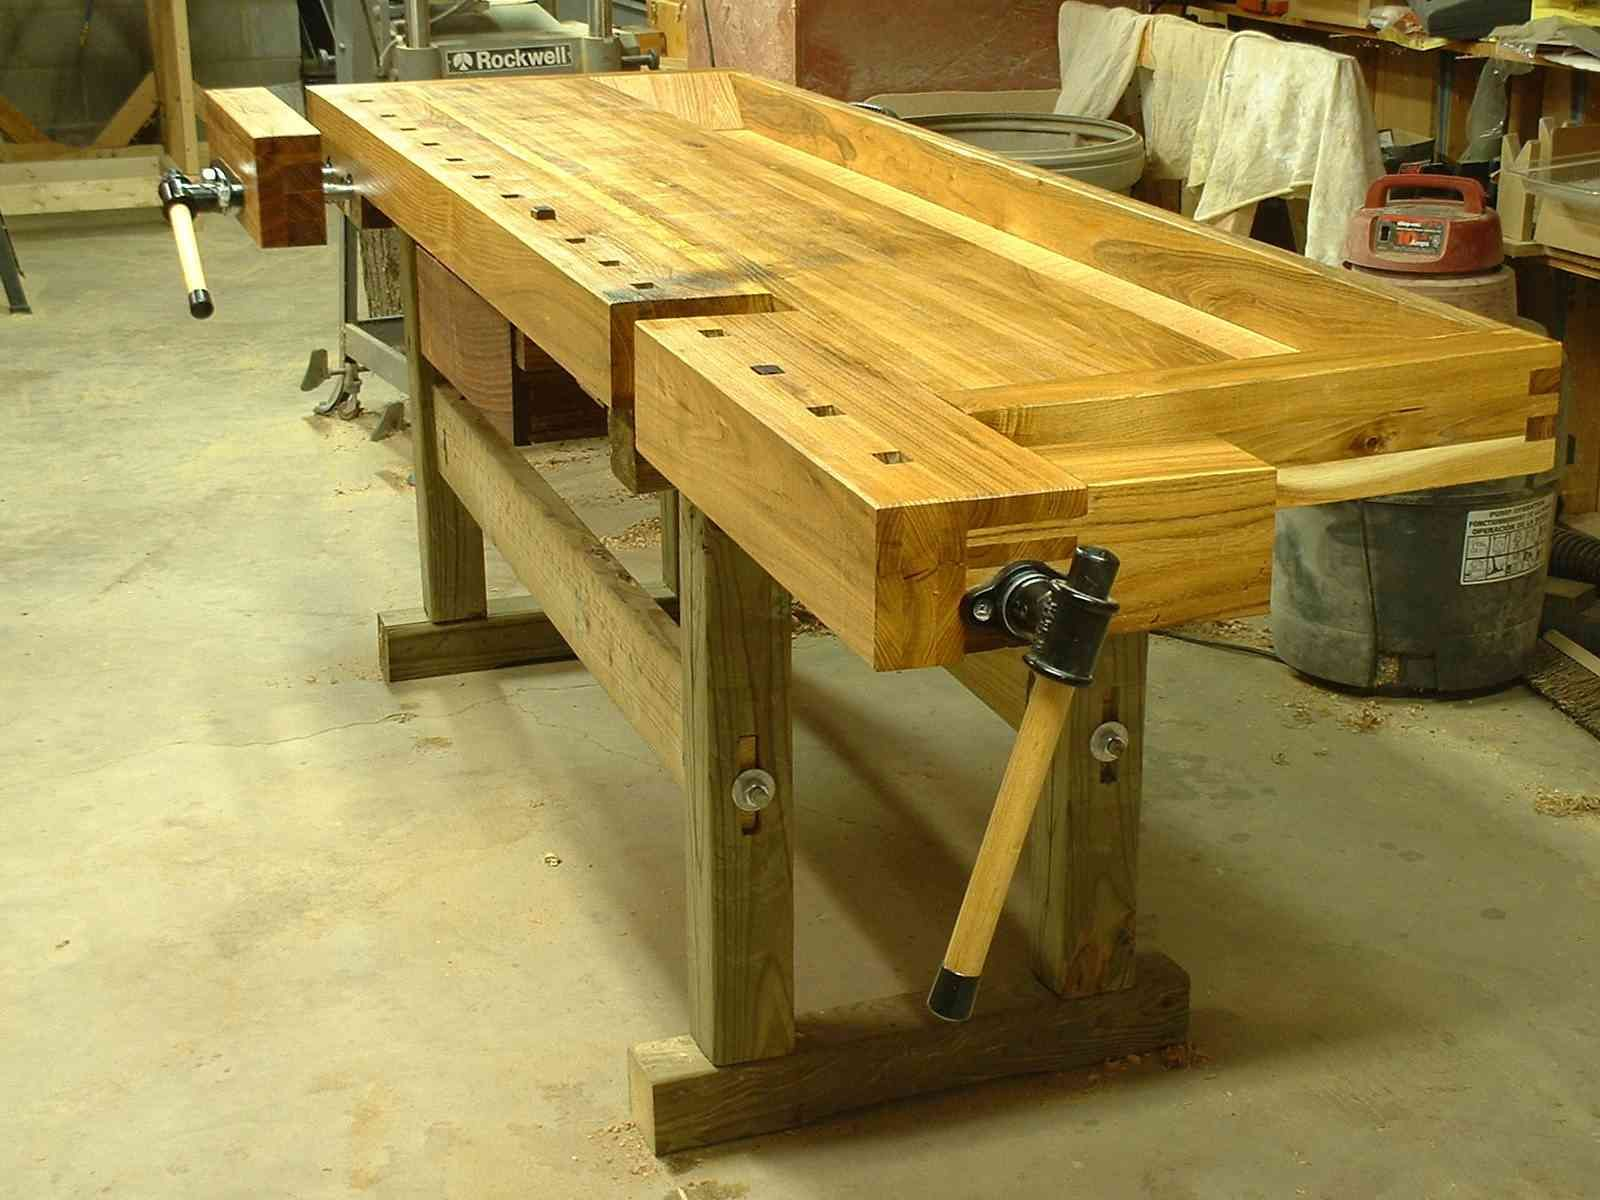 workbench ideas - bing images | for the home workshop